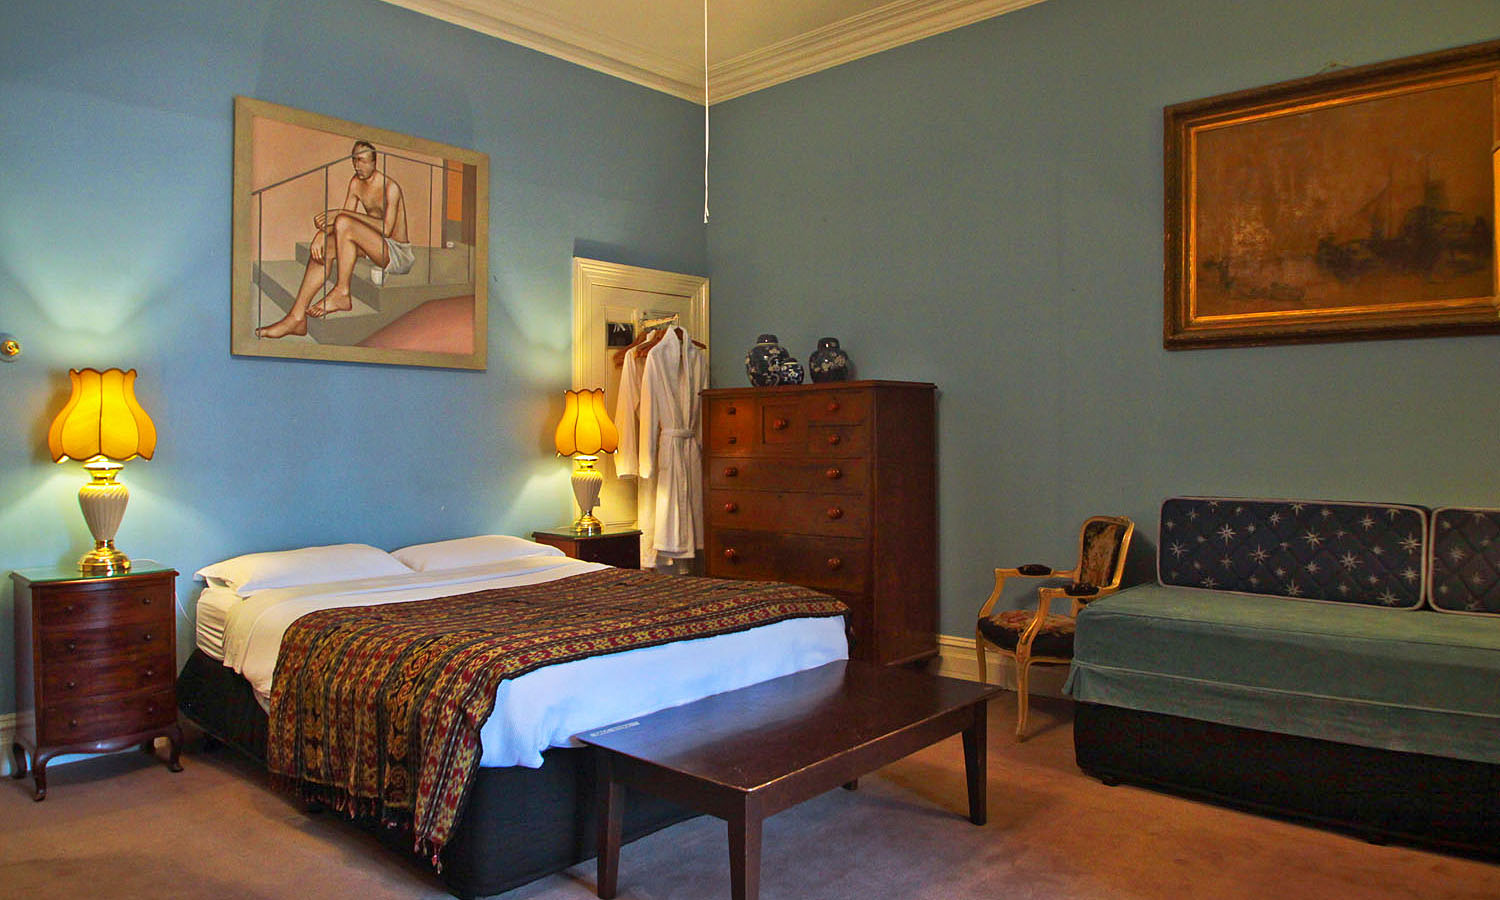 brooklyn arts hotel melbourne reviews